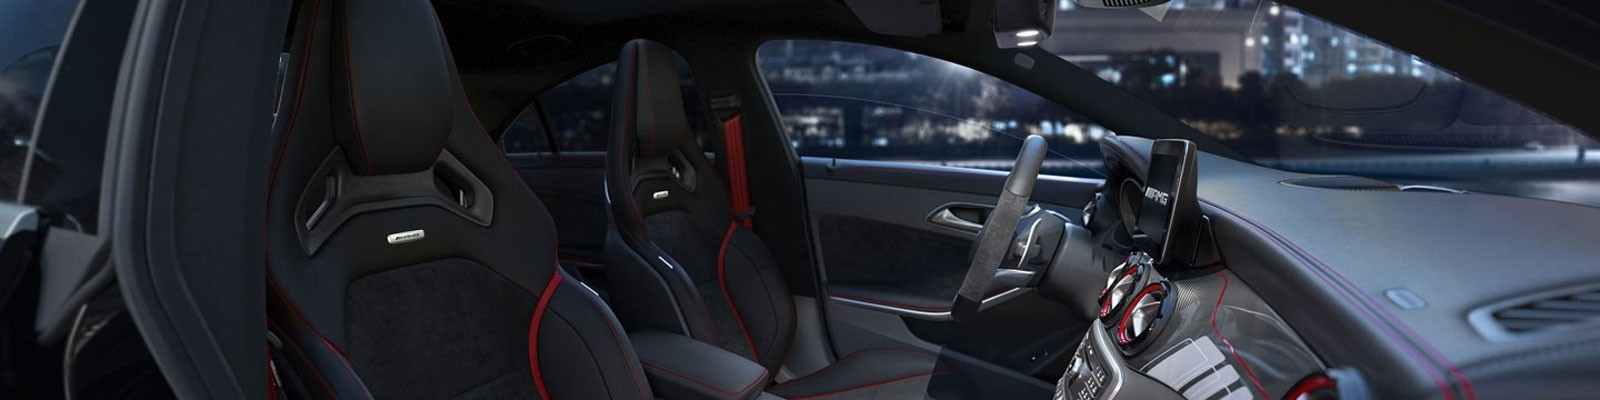 Mercedes-Benz CLA Coupe seating